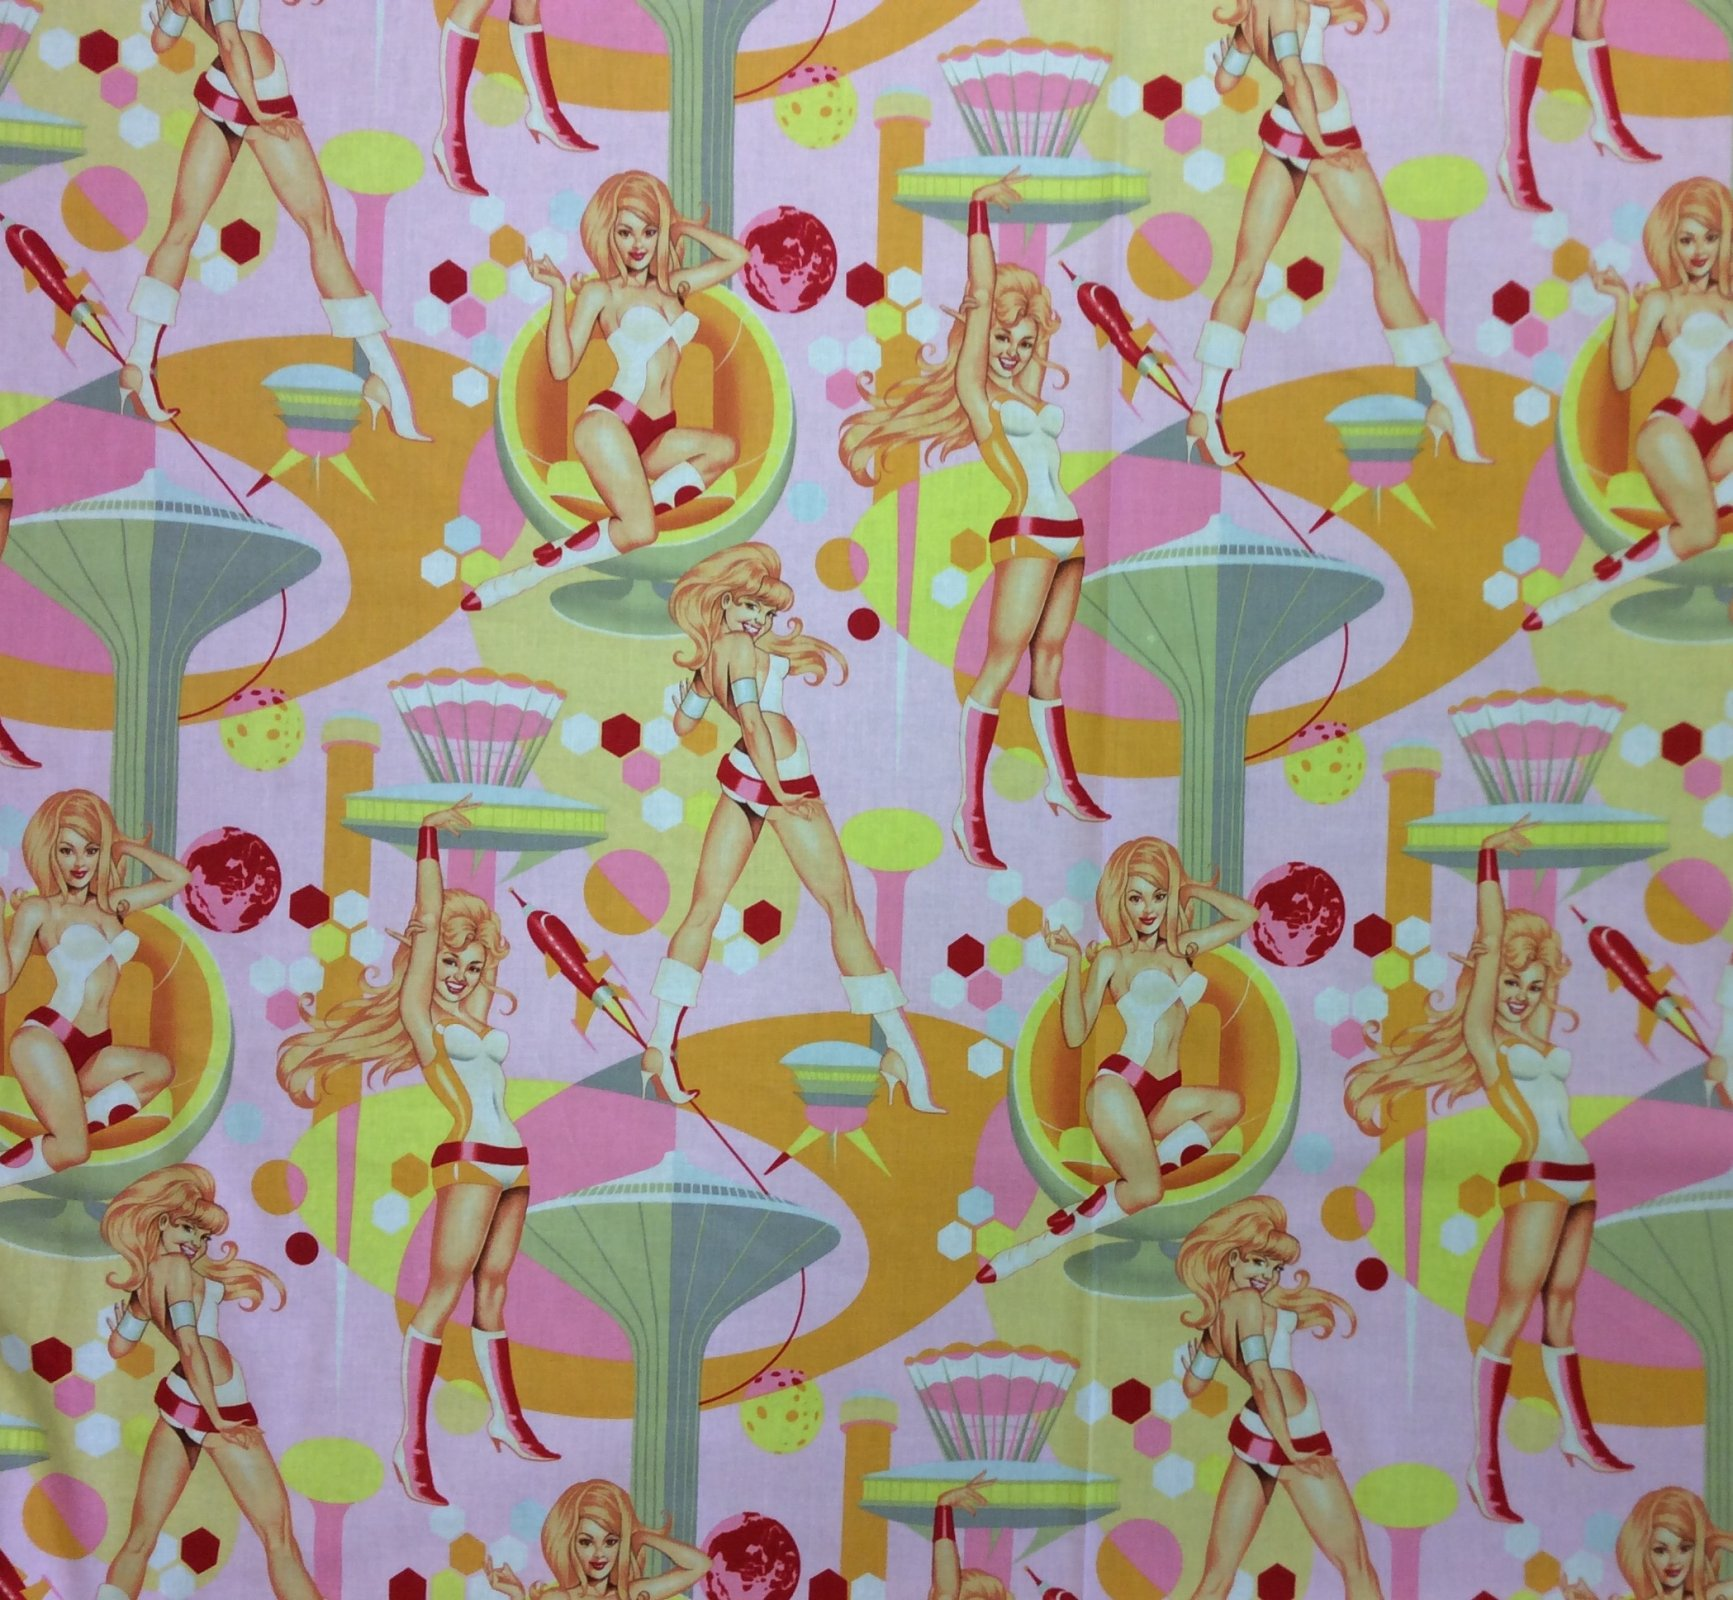 Sexy Pin Up Girls Retro Futurella Alexander Henry Cotton Quilt Fabric AH245